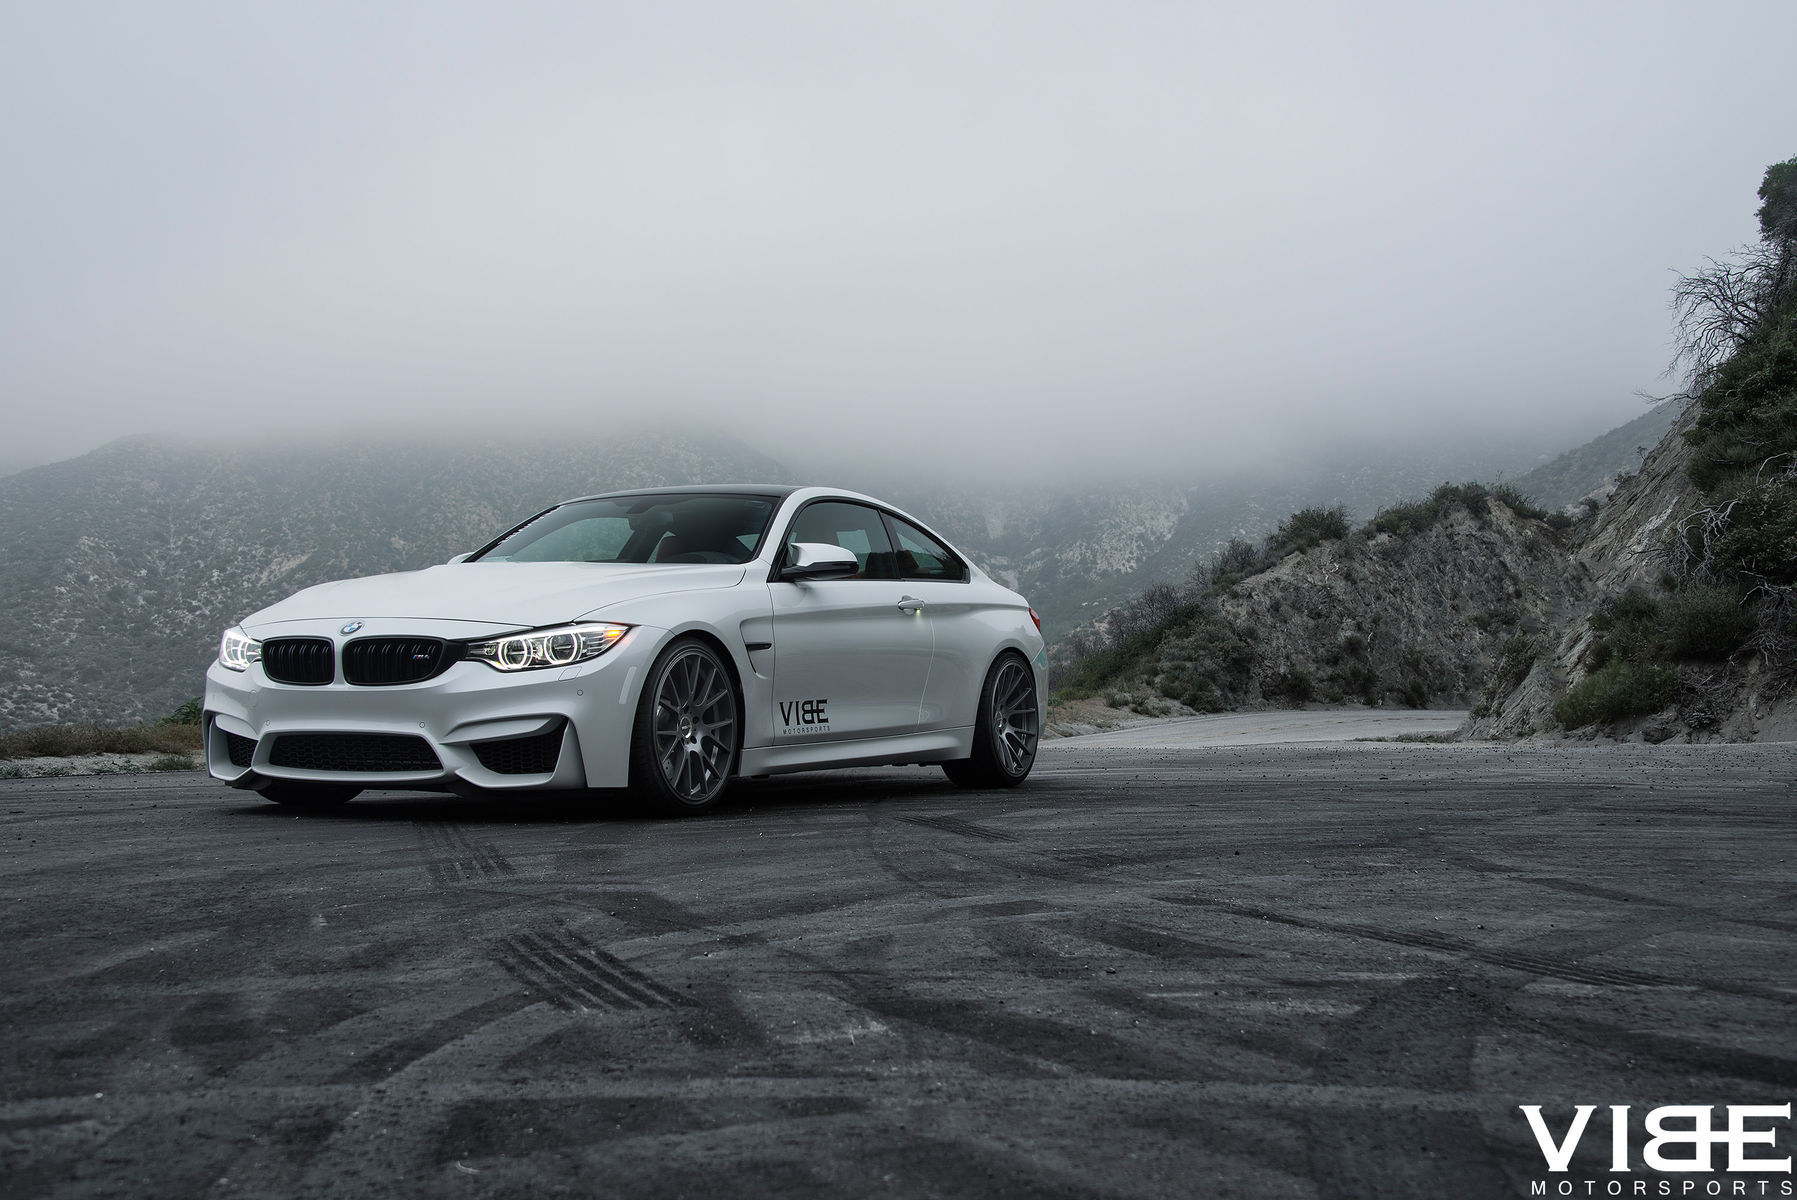 2016 BMW M4 | BMW M4 on the RSR R801 wheels - Bimmer In Fog